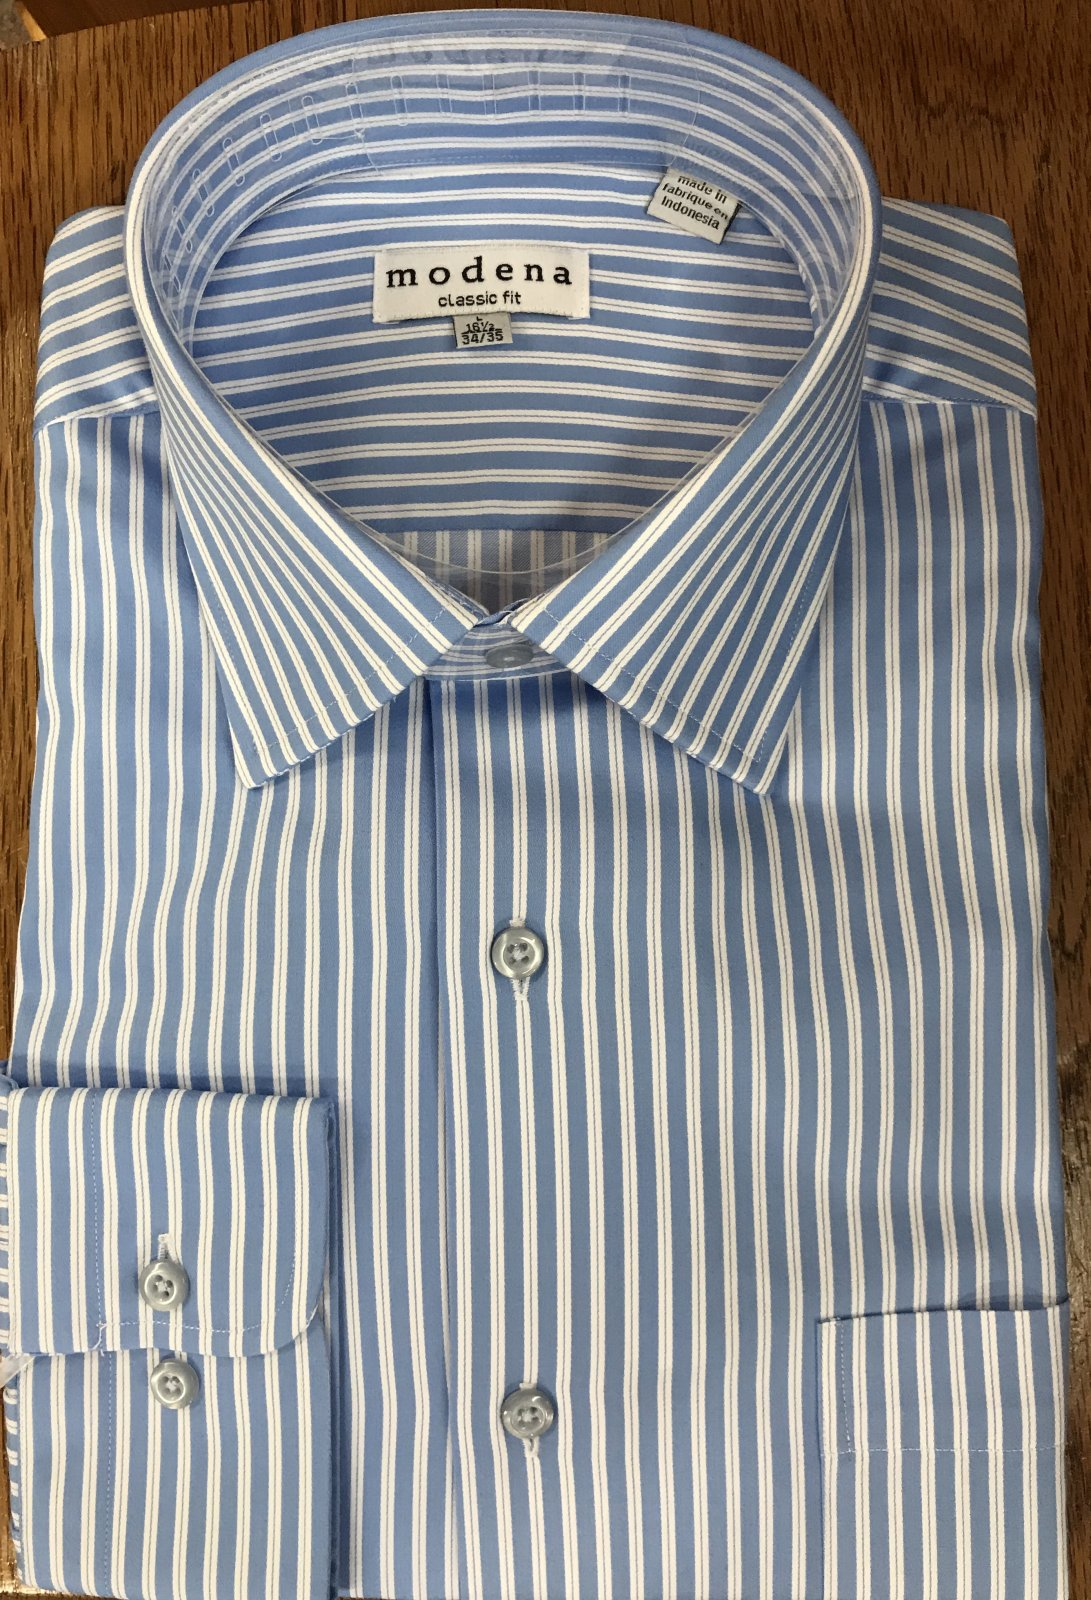 Modena Classic Fit Blue/White Stripe